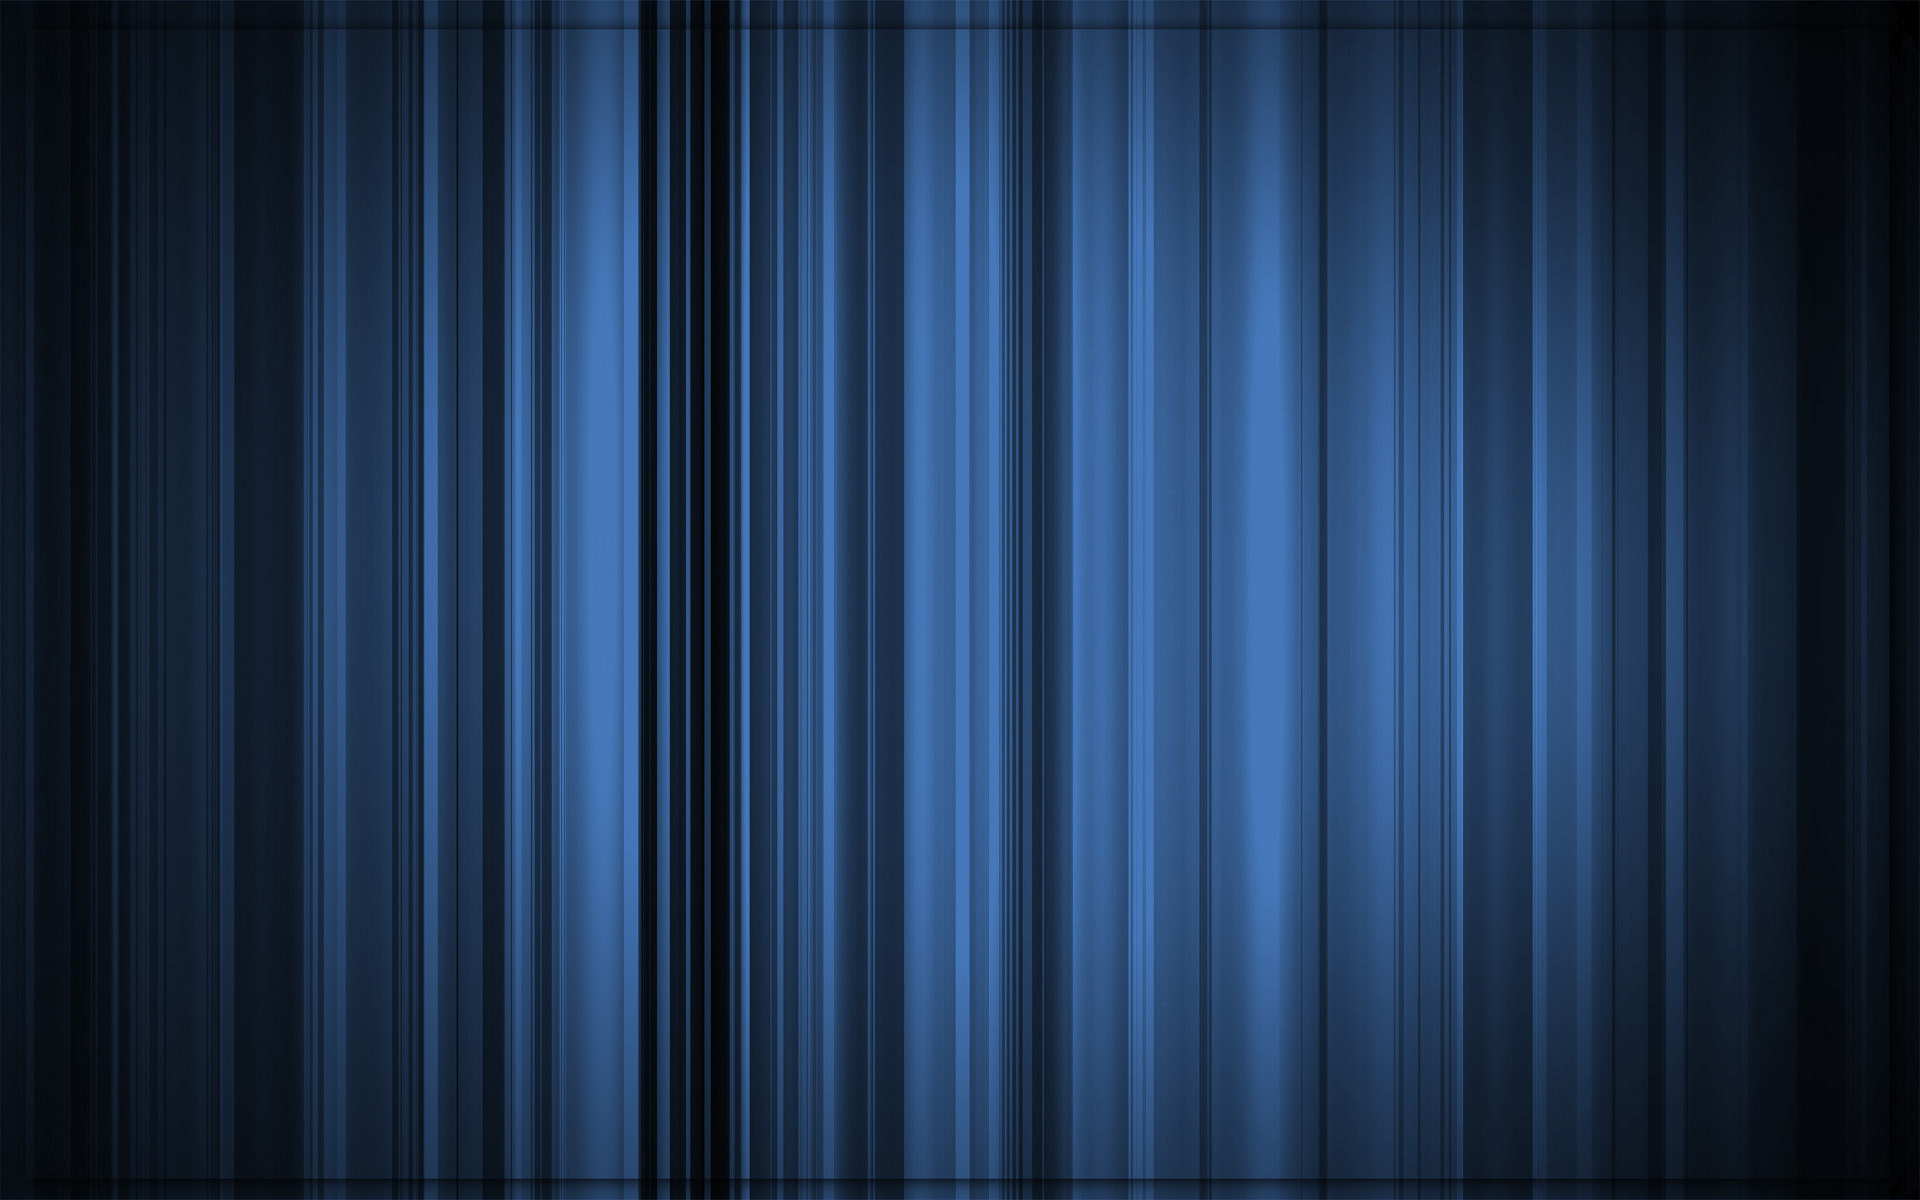 wallpaper patterns blue striped images 1920x1200 1920x1200